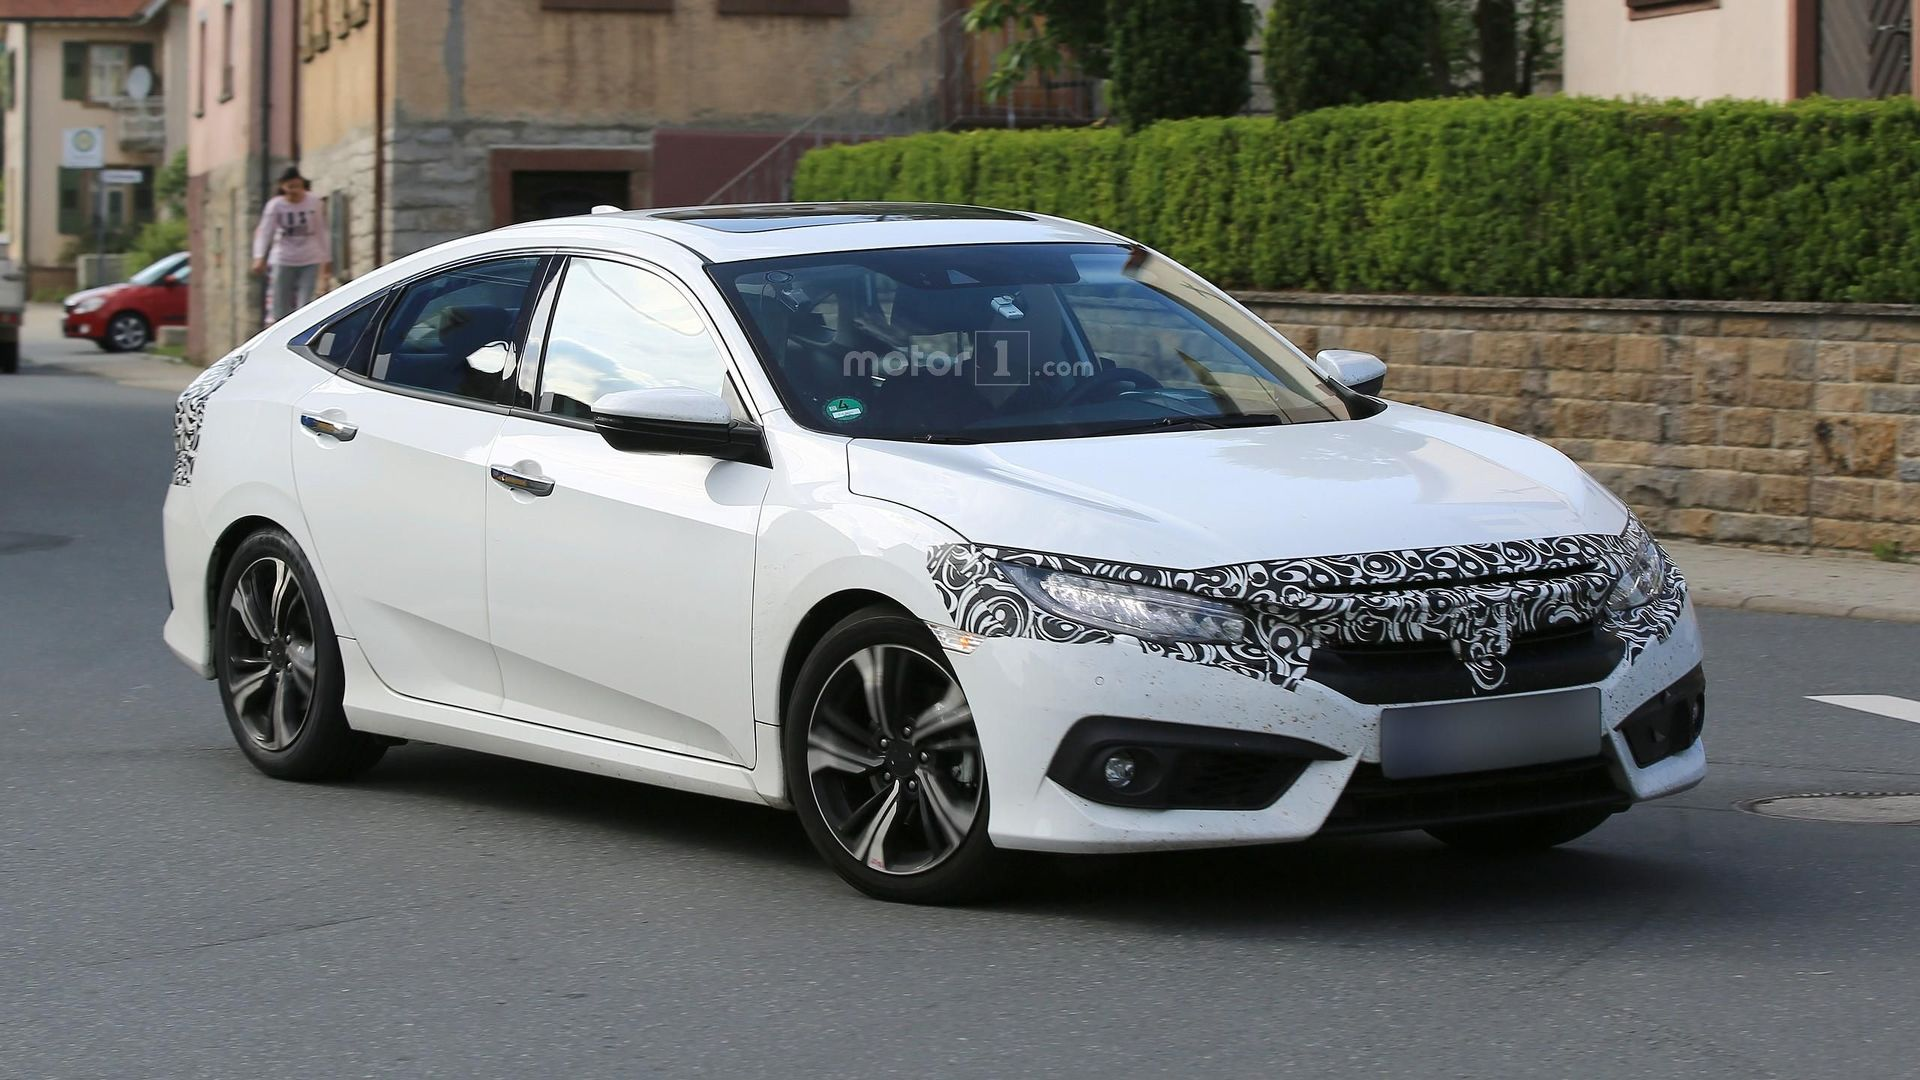 2017 Honda Civic sedan, hatchback getting ready for Europe